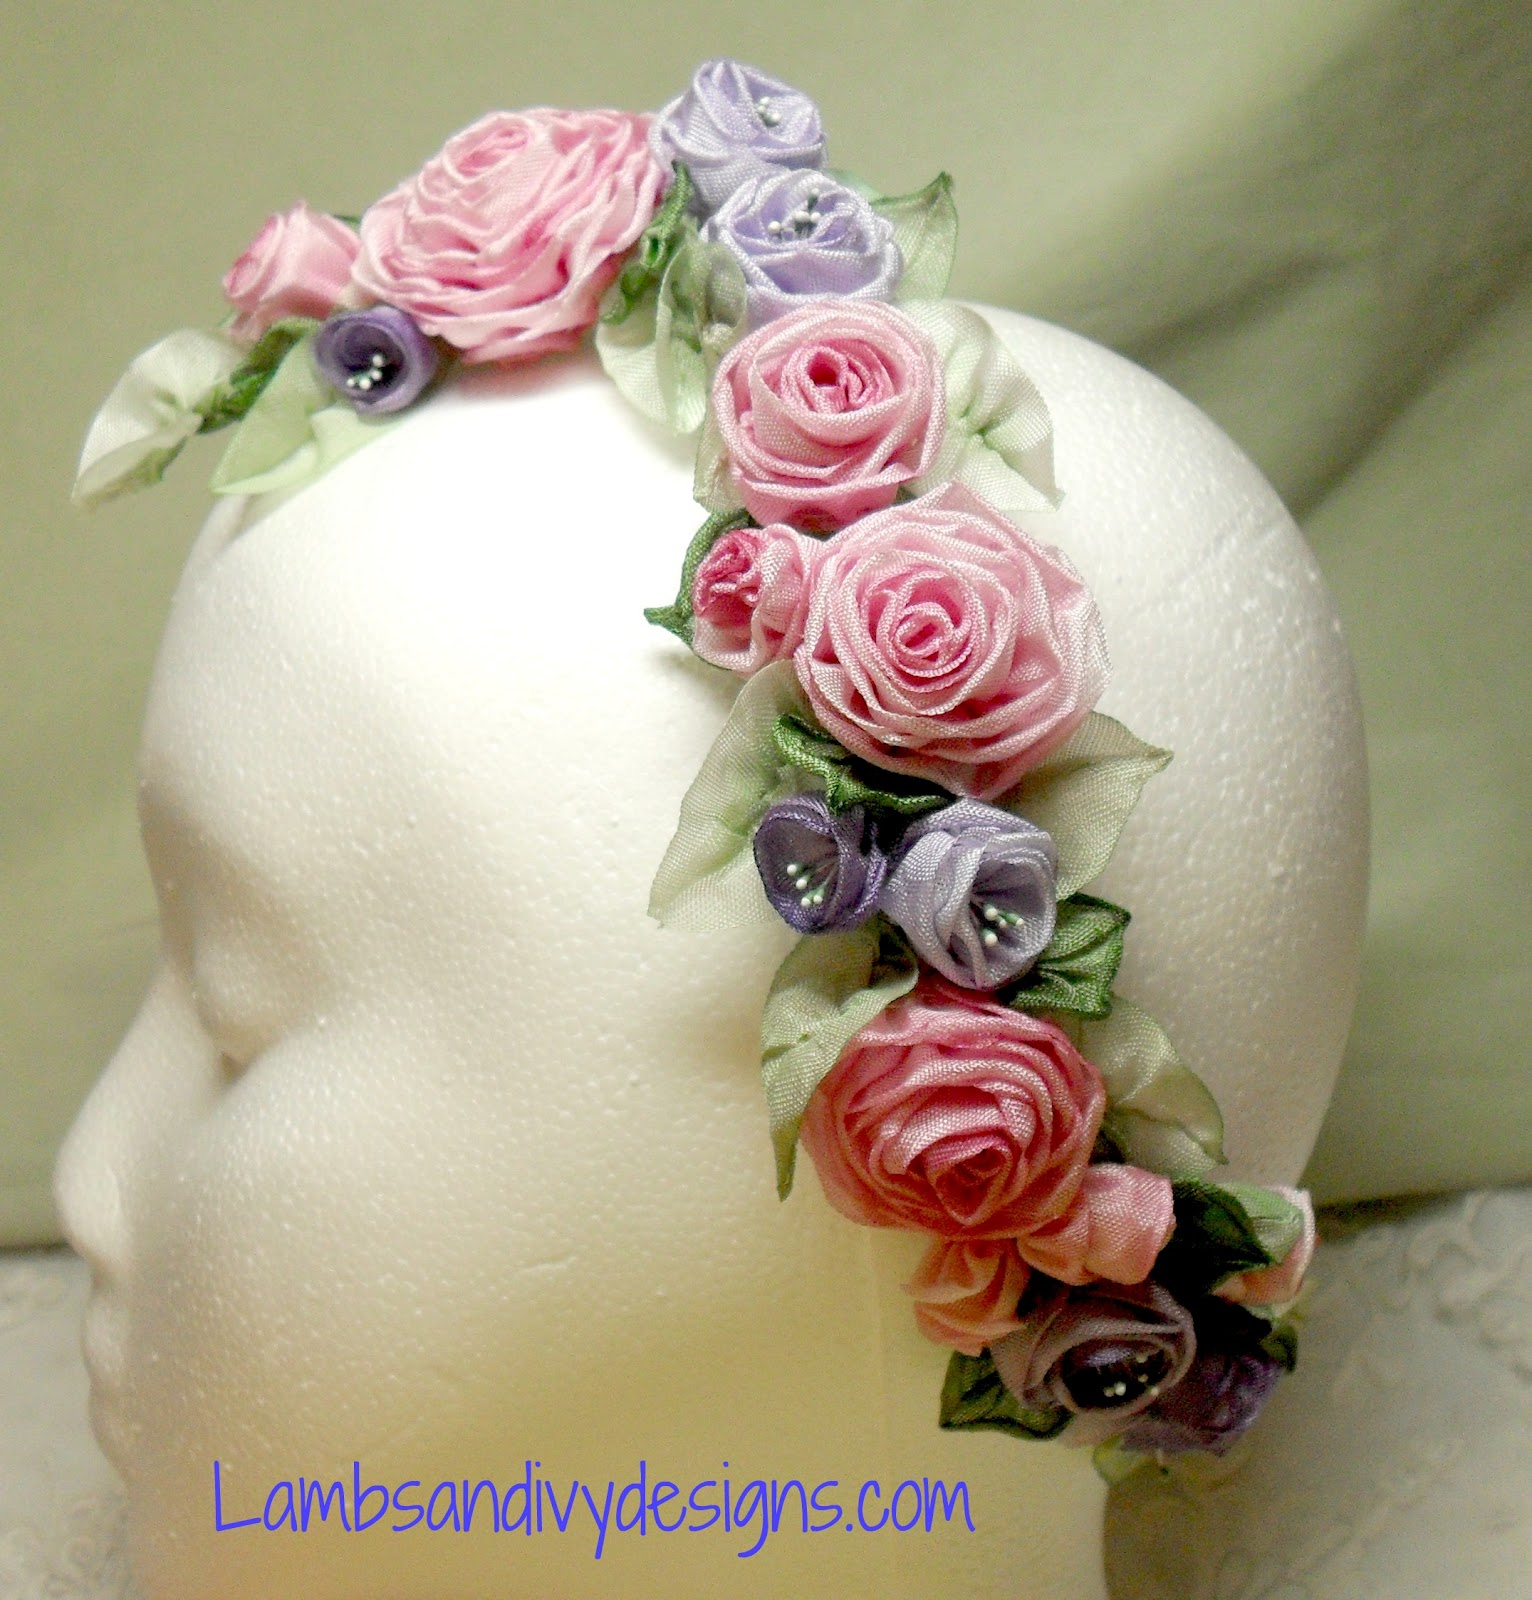 Lambs And Ivy Designs 2012